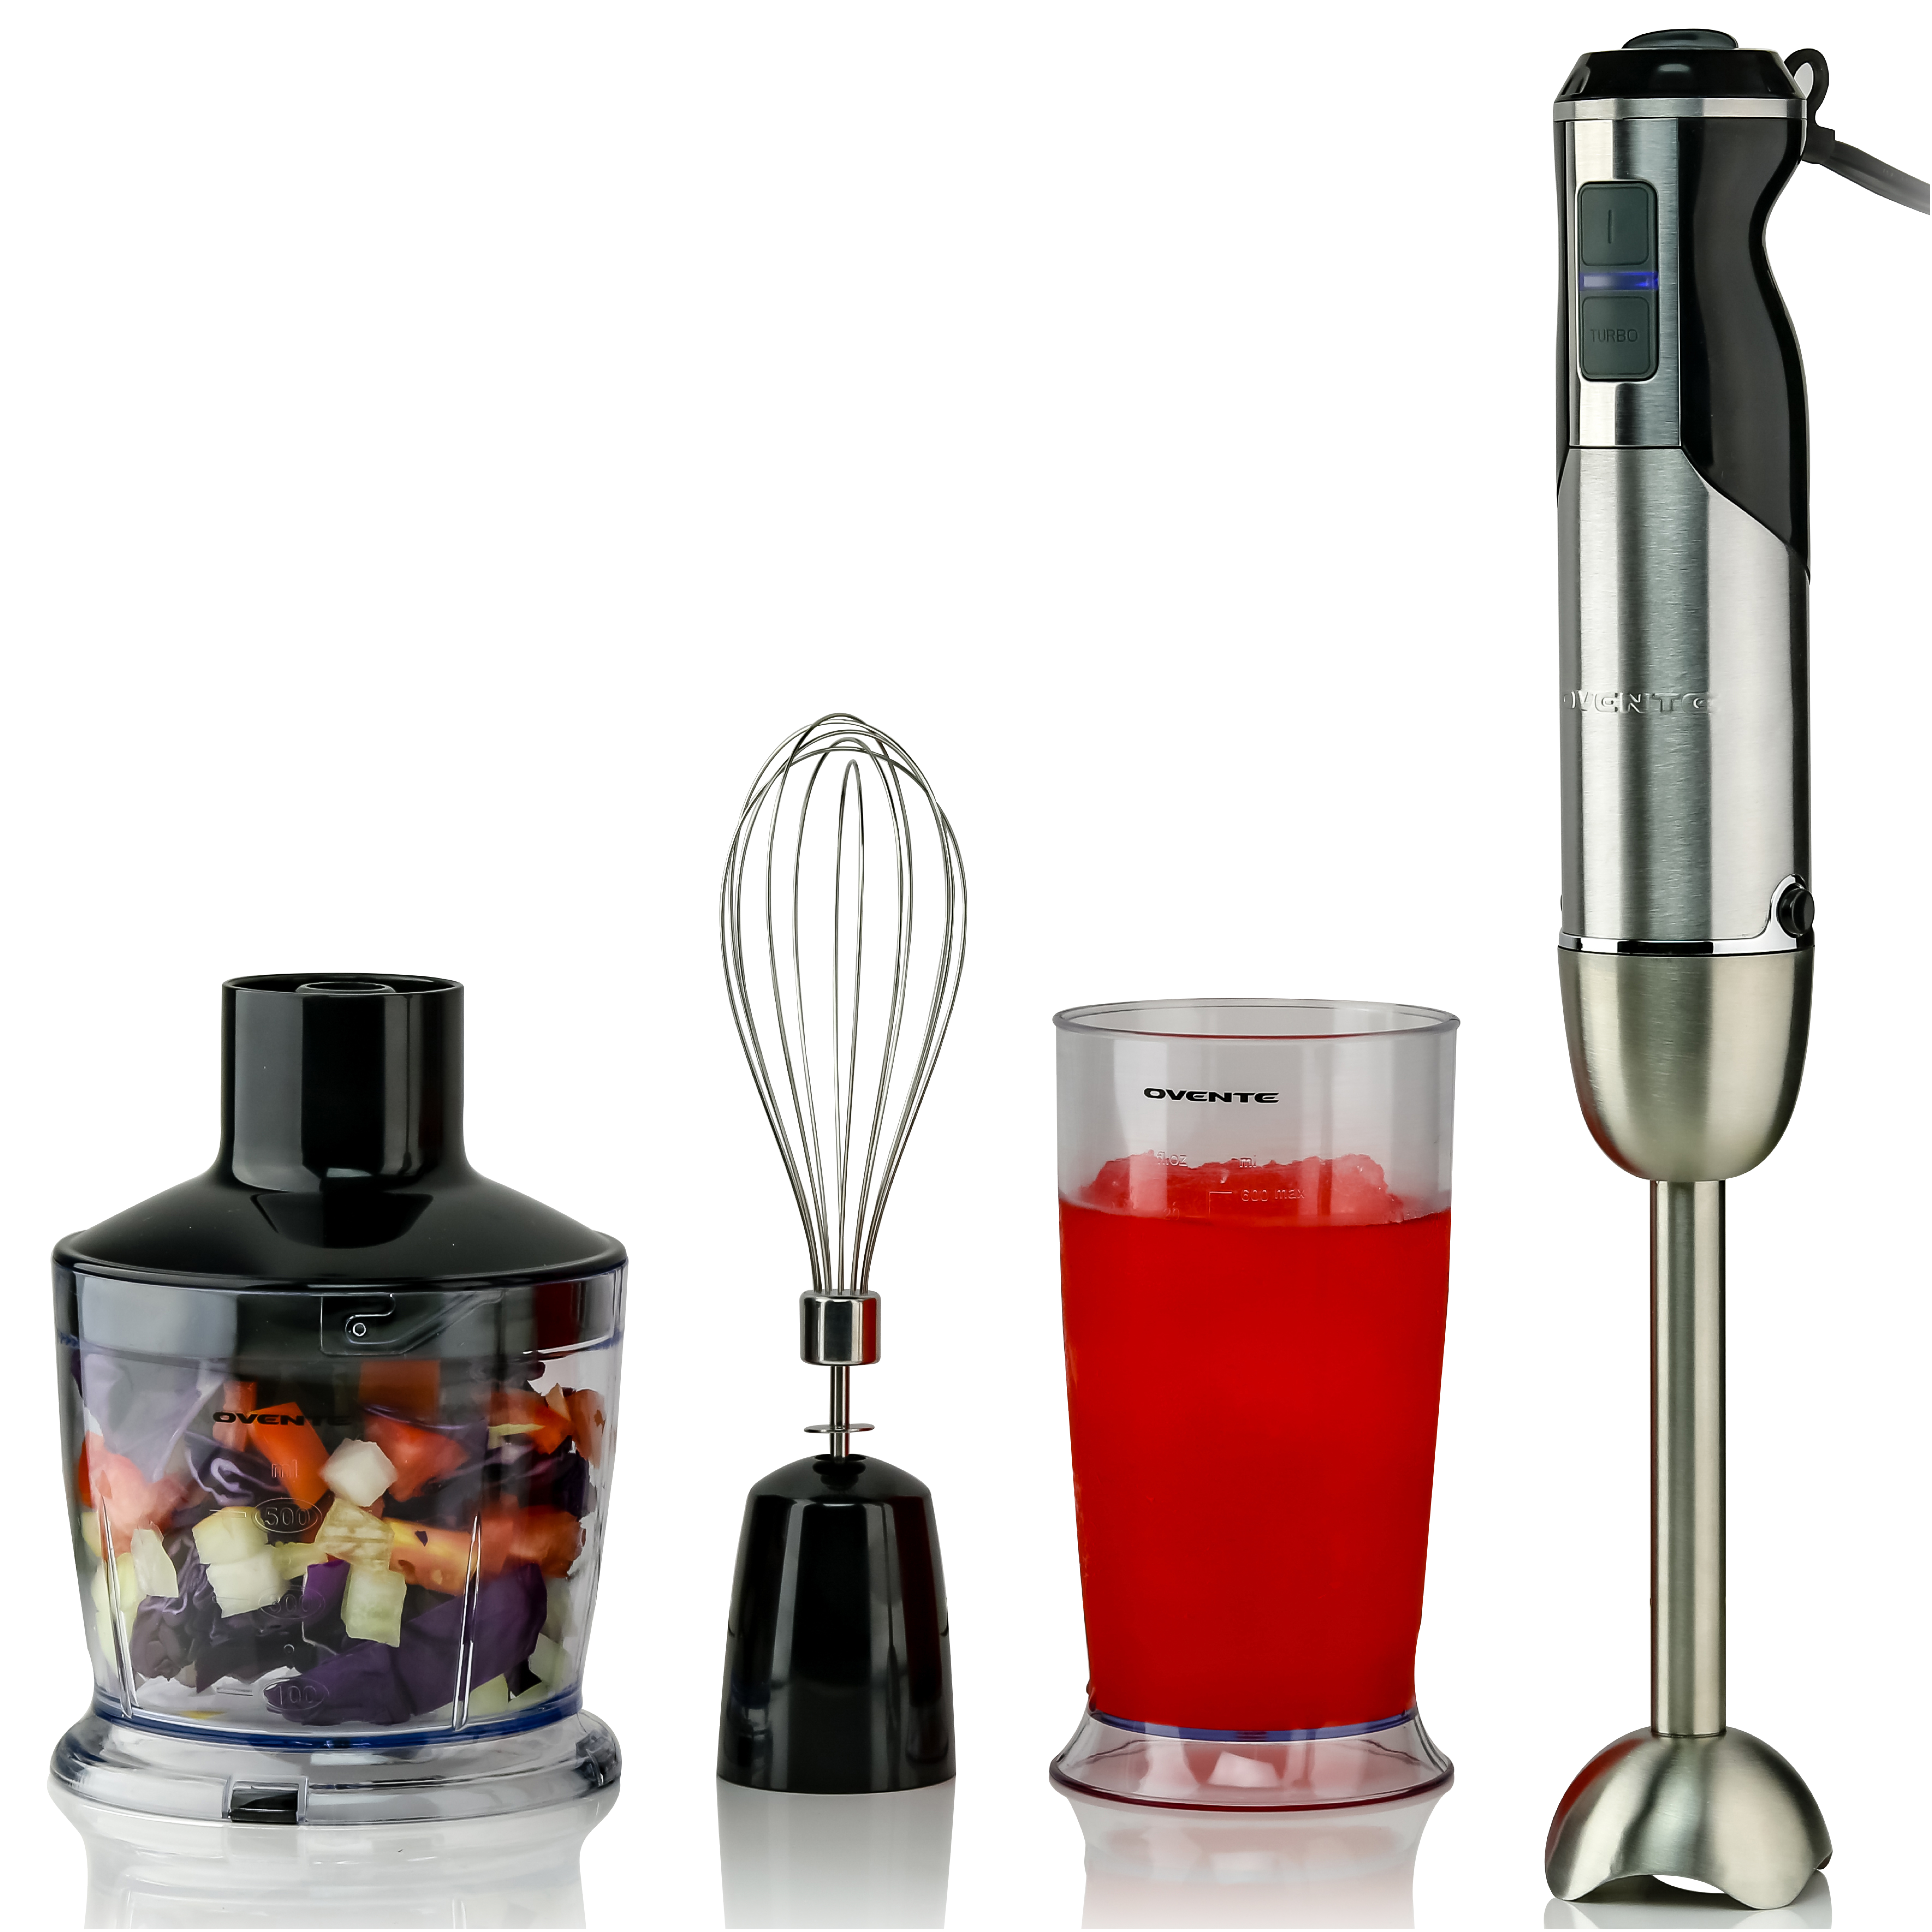 Ovente Multi-Purpose Immersion Hand Blender Set ? 500-Watts, 6-Speed Variable Control Stainless Steel Includes Food Chopper, Egg Whisk, and BPA-Free Beaker (600ml) Black (HS665B)